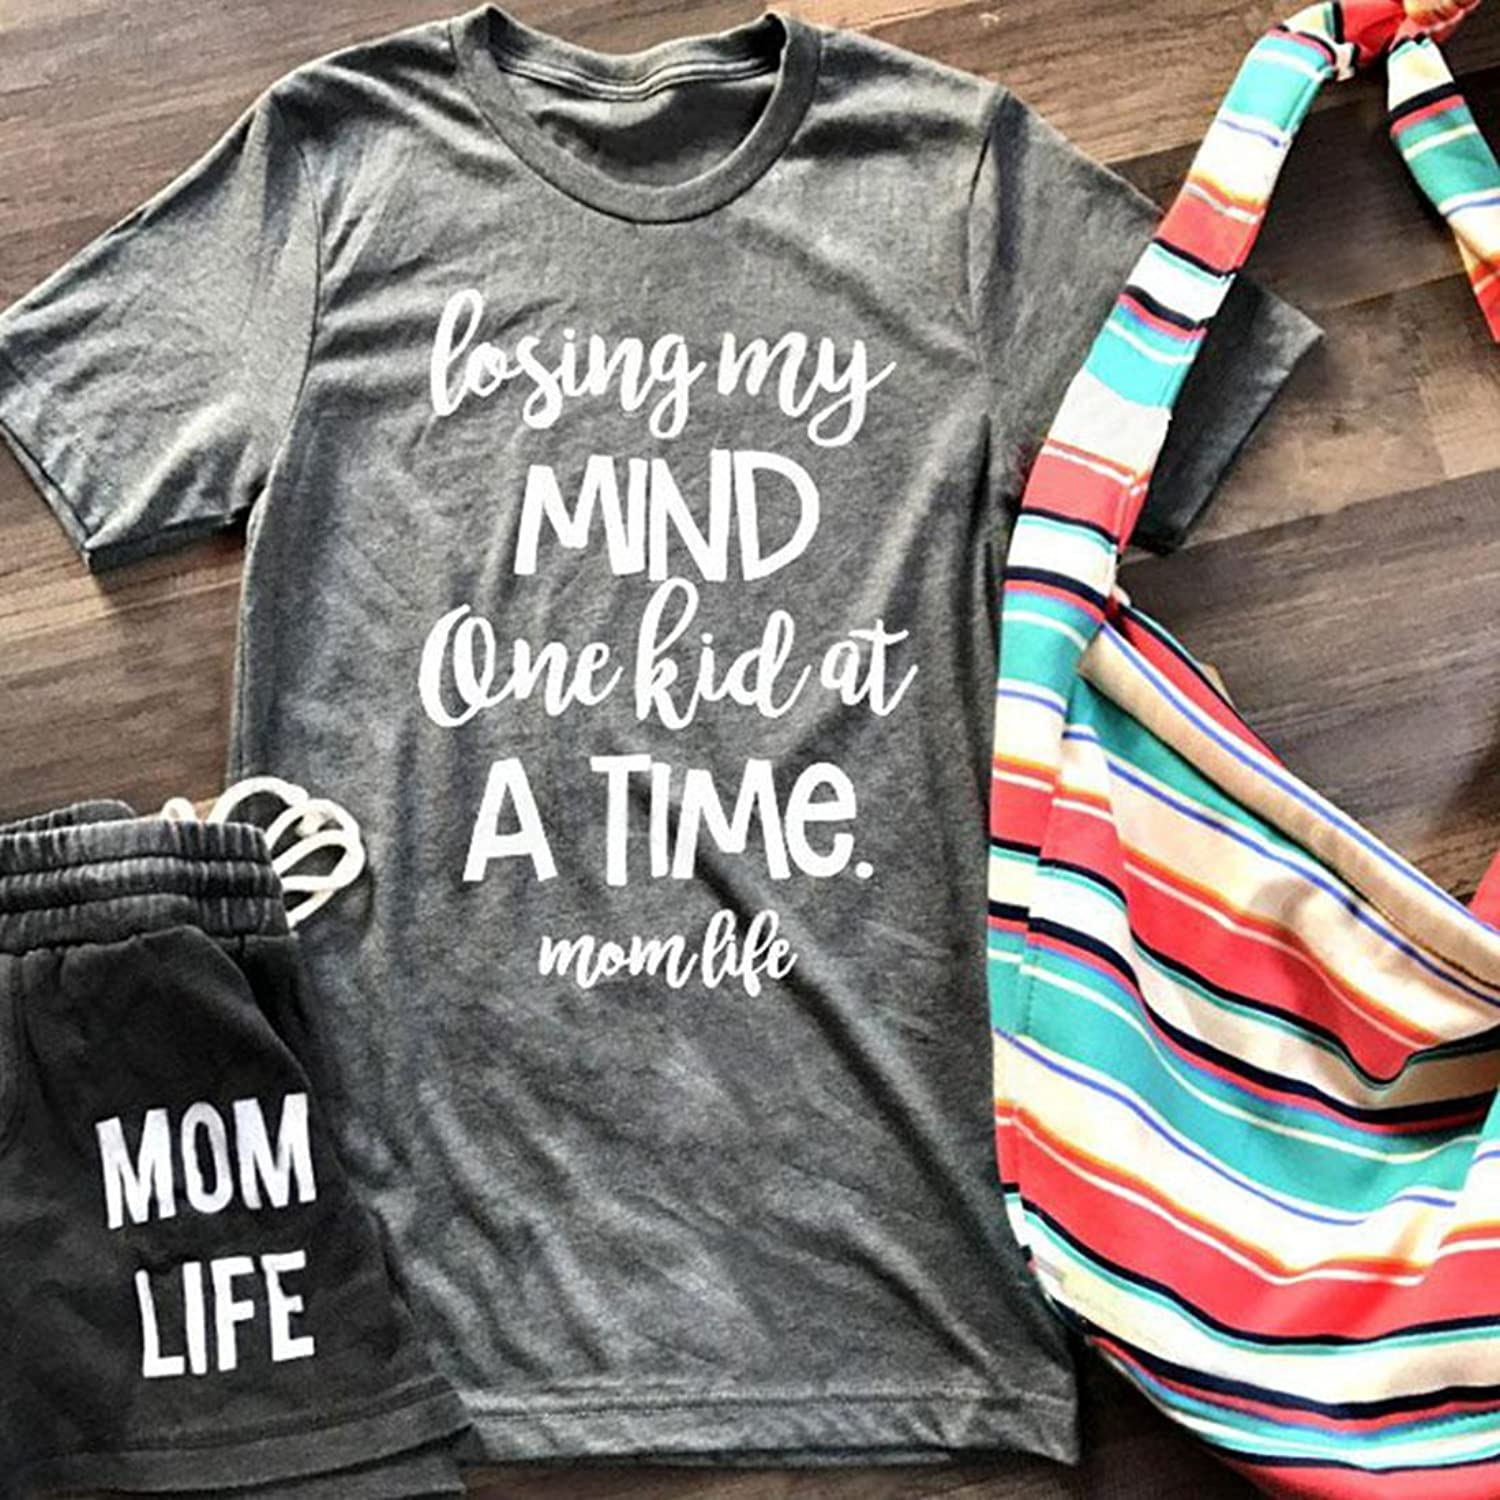 5f5dd4d66dba8 Amazon.com: Women Casual Letters Print T-Shirt Short Sleeve Losing My Mind Mom  Life Tops Tee: Clothing